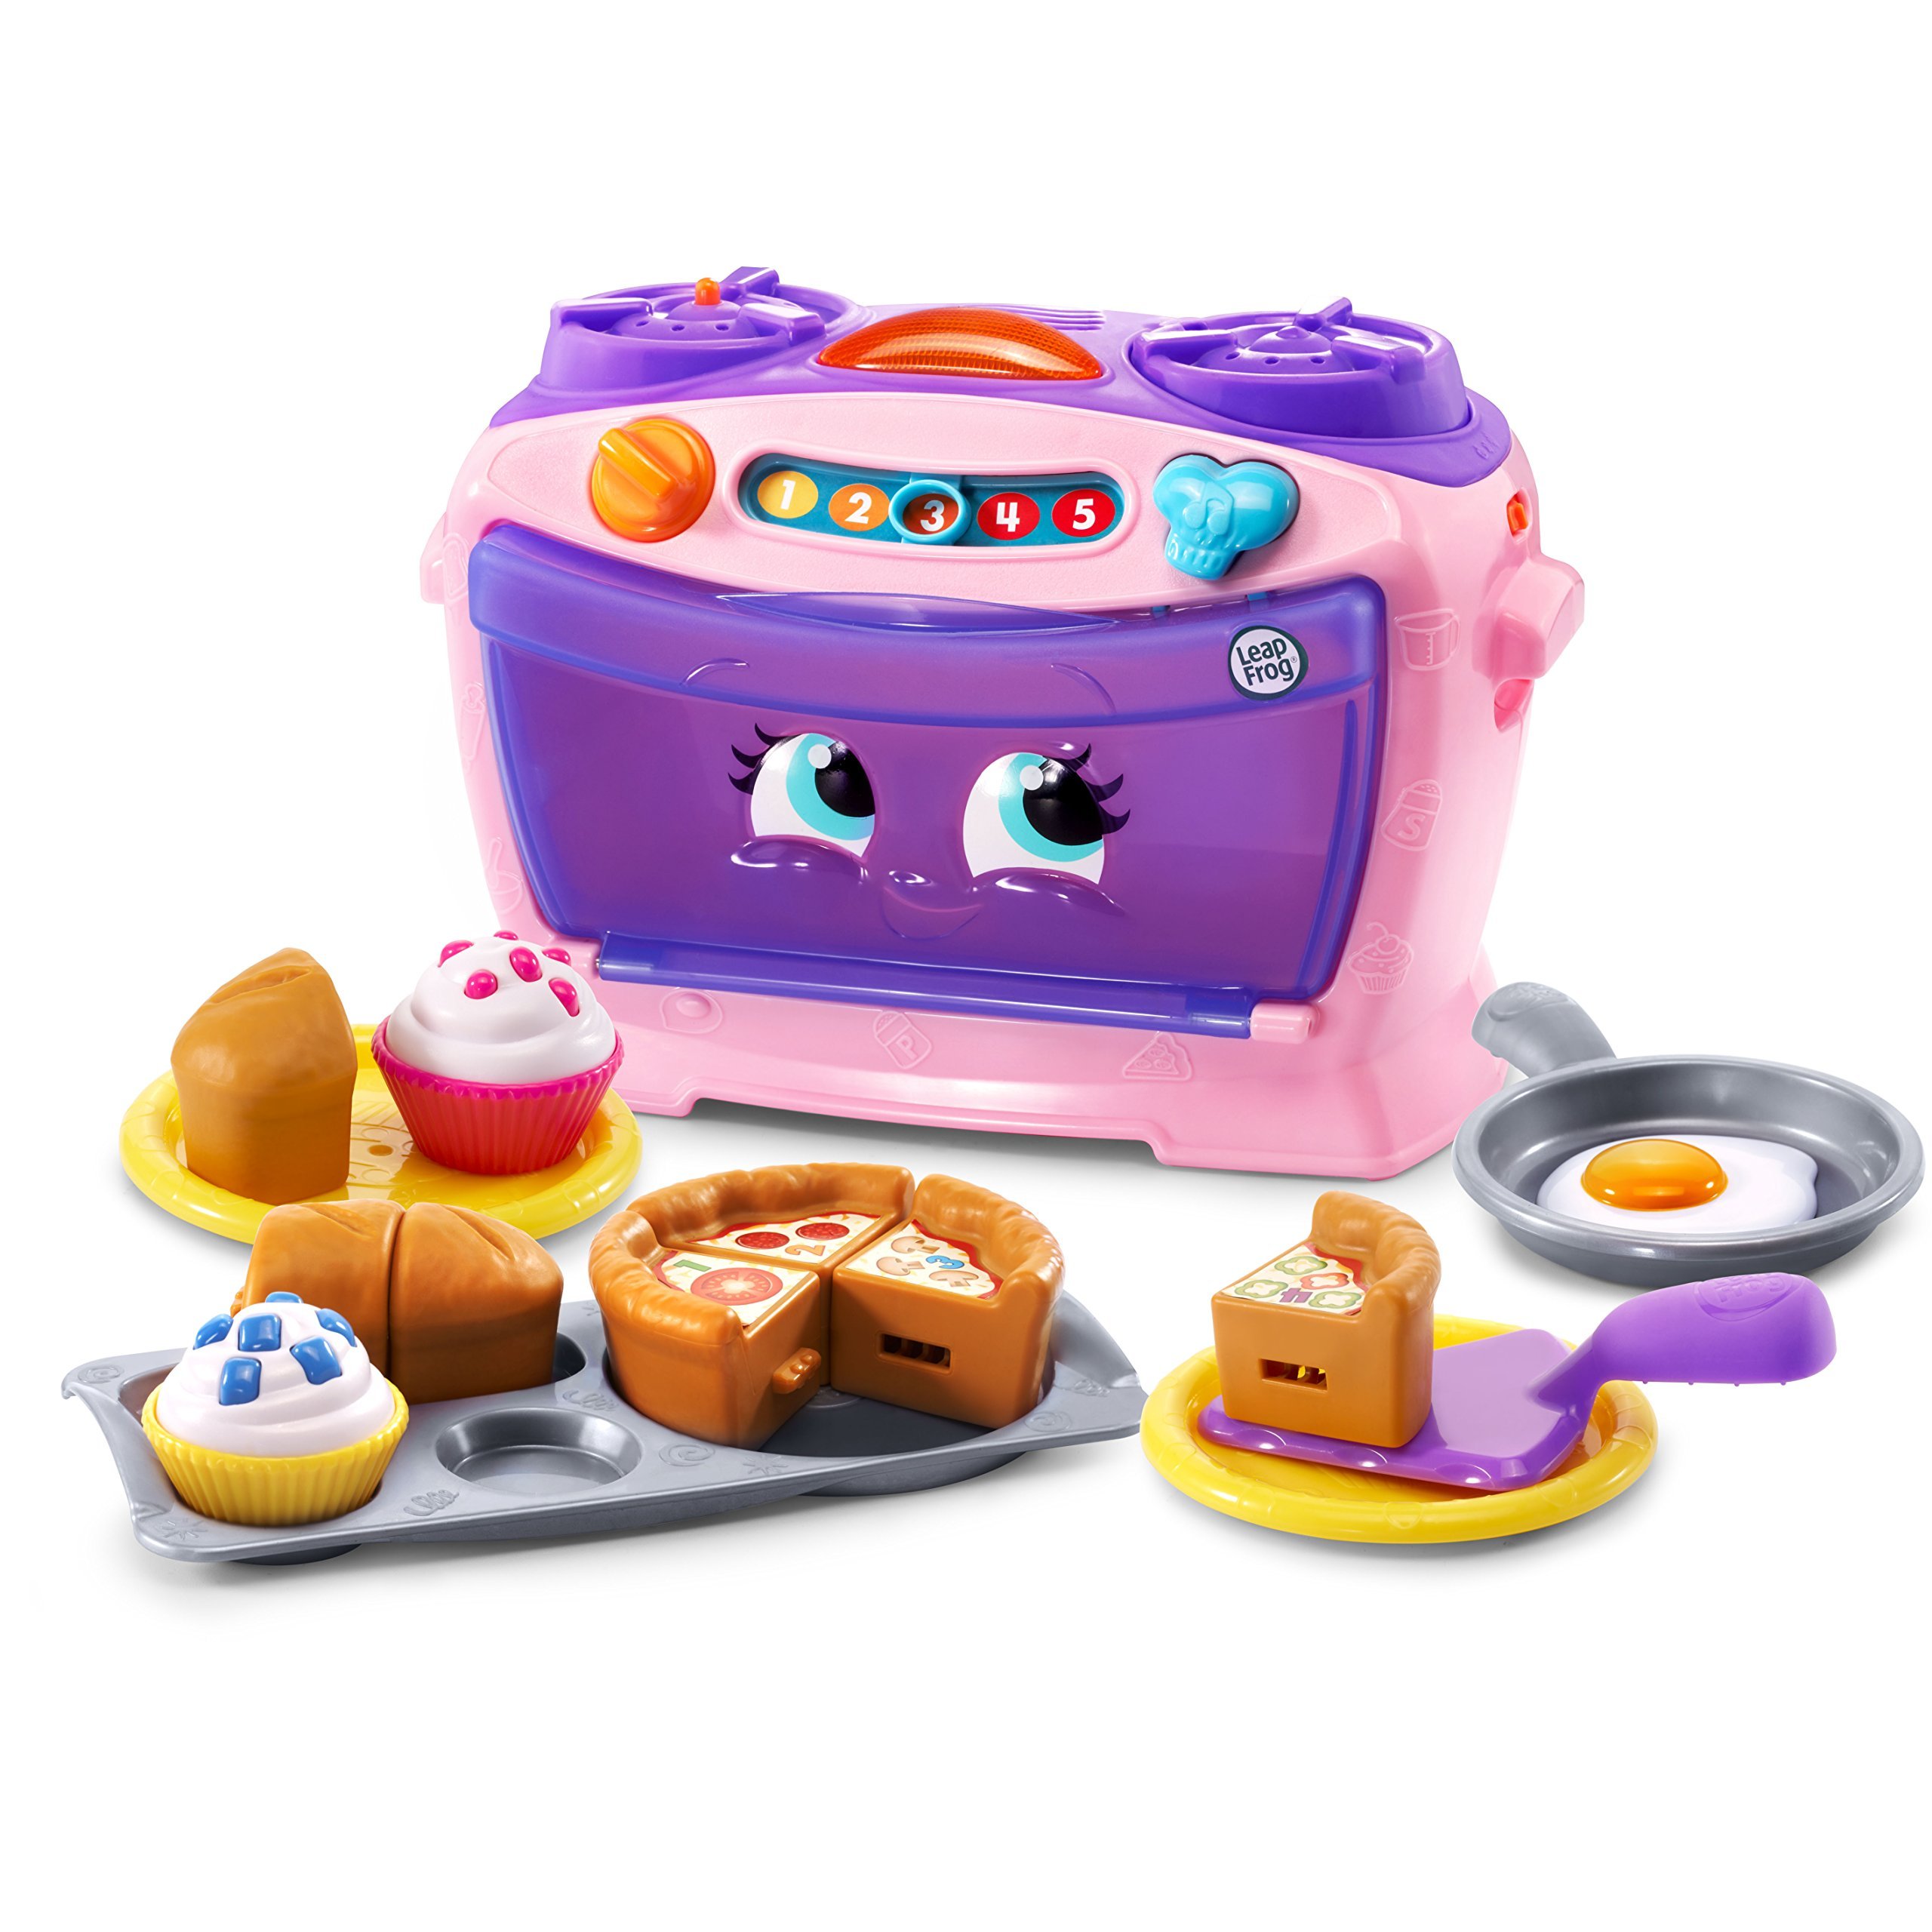 LeapFrog Number Lovin' Oven, pink (Amazon Exclusive) by LeapFrog